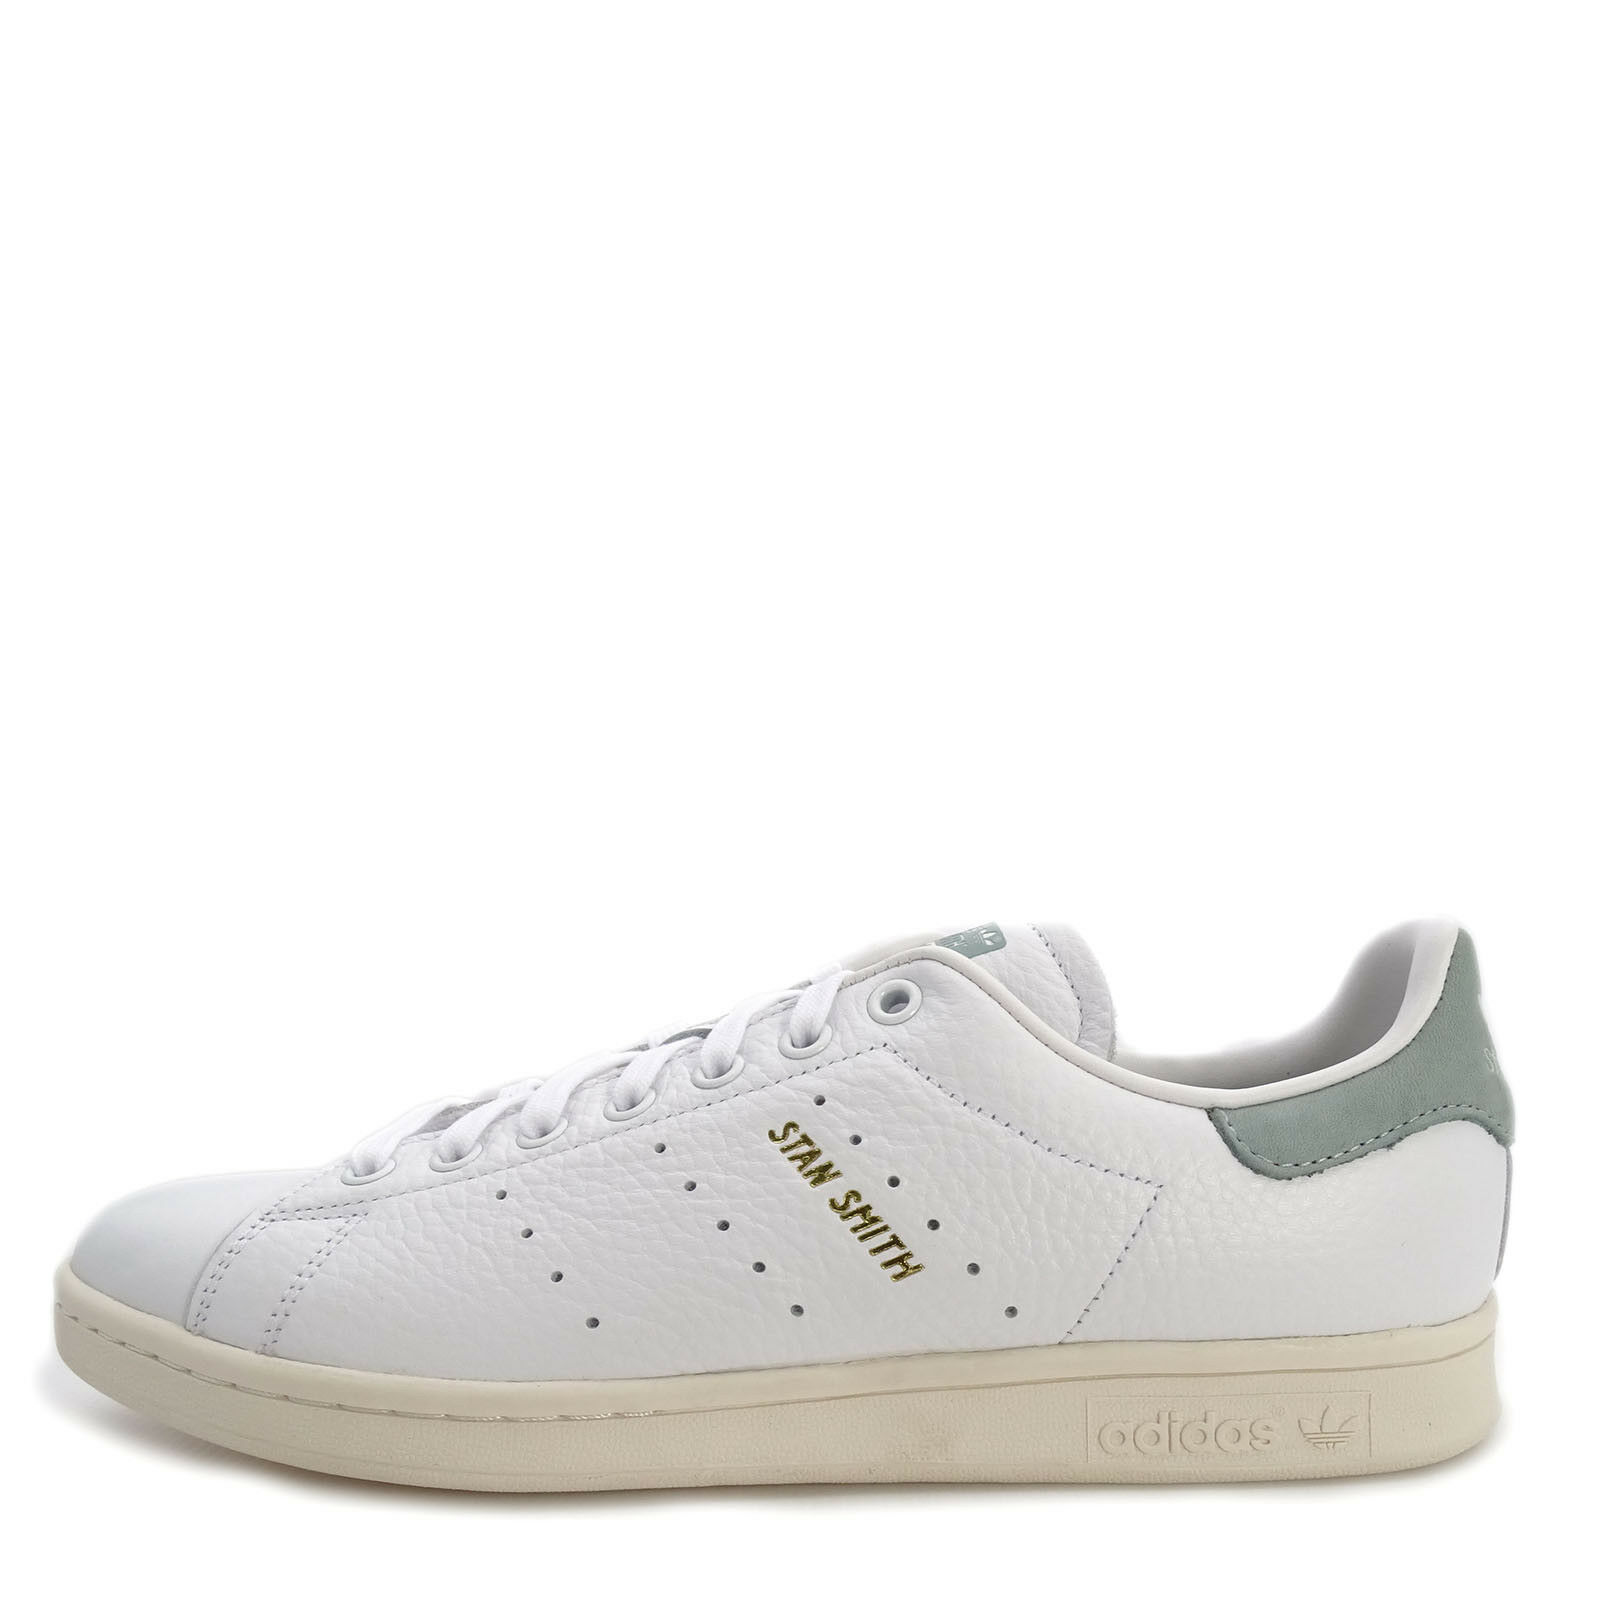 Adidas Originals Stan Smith Price reduction Men Casual Shoes White/White-Green